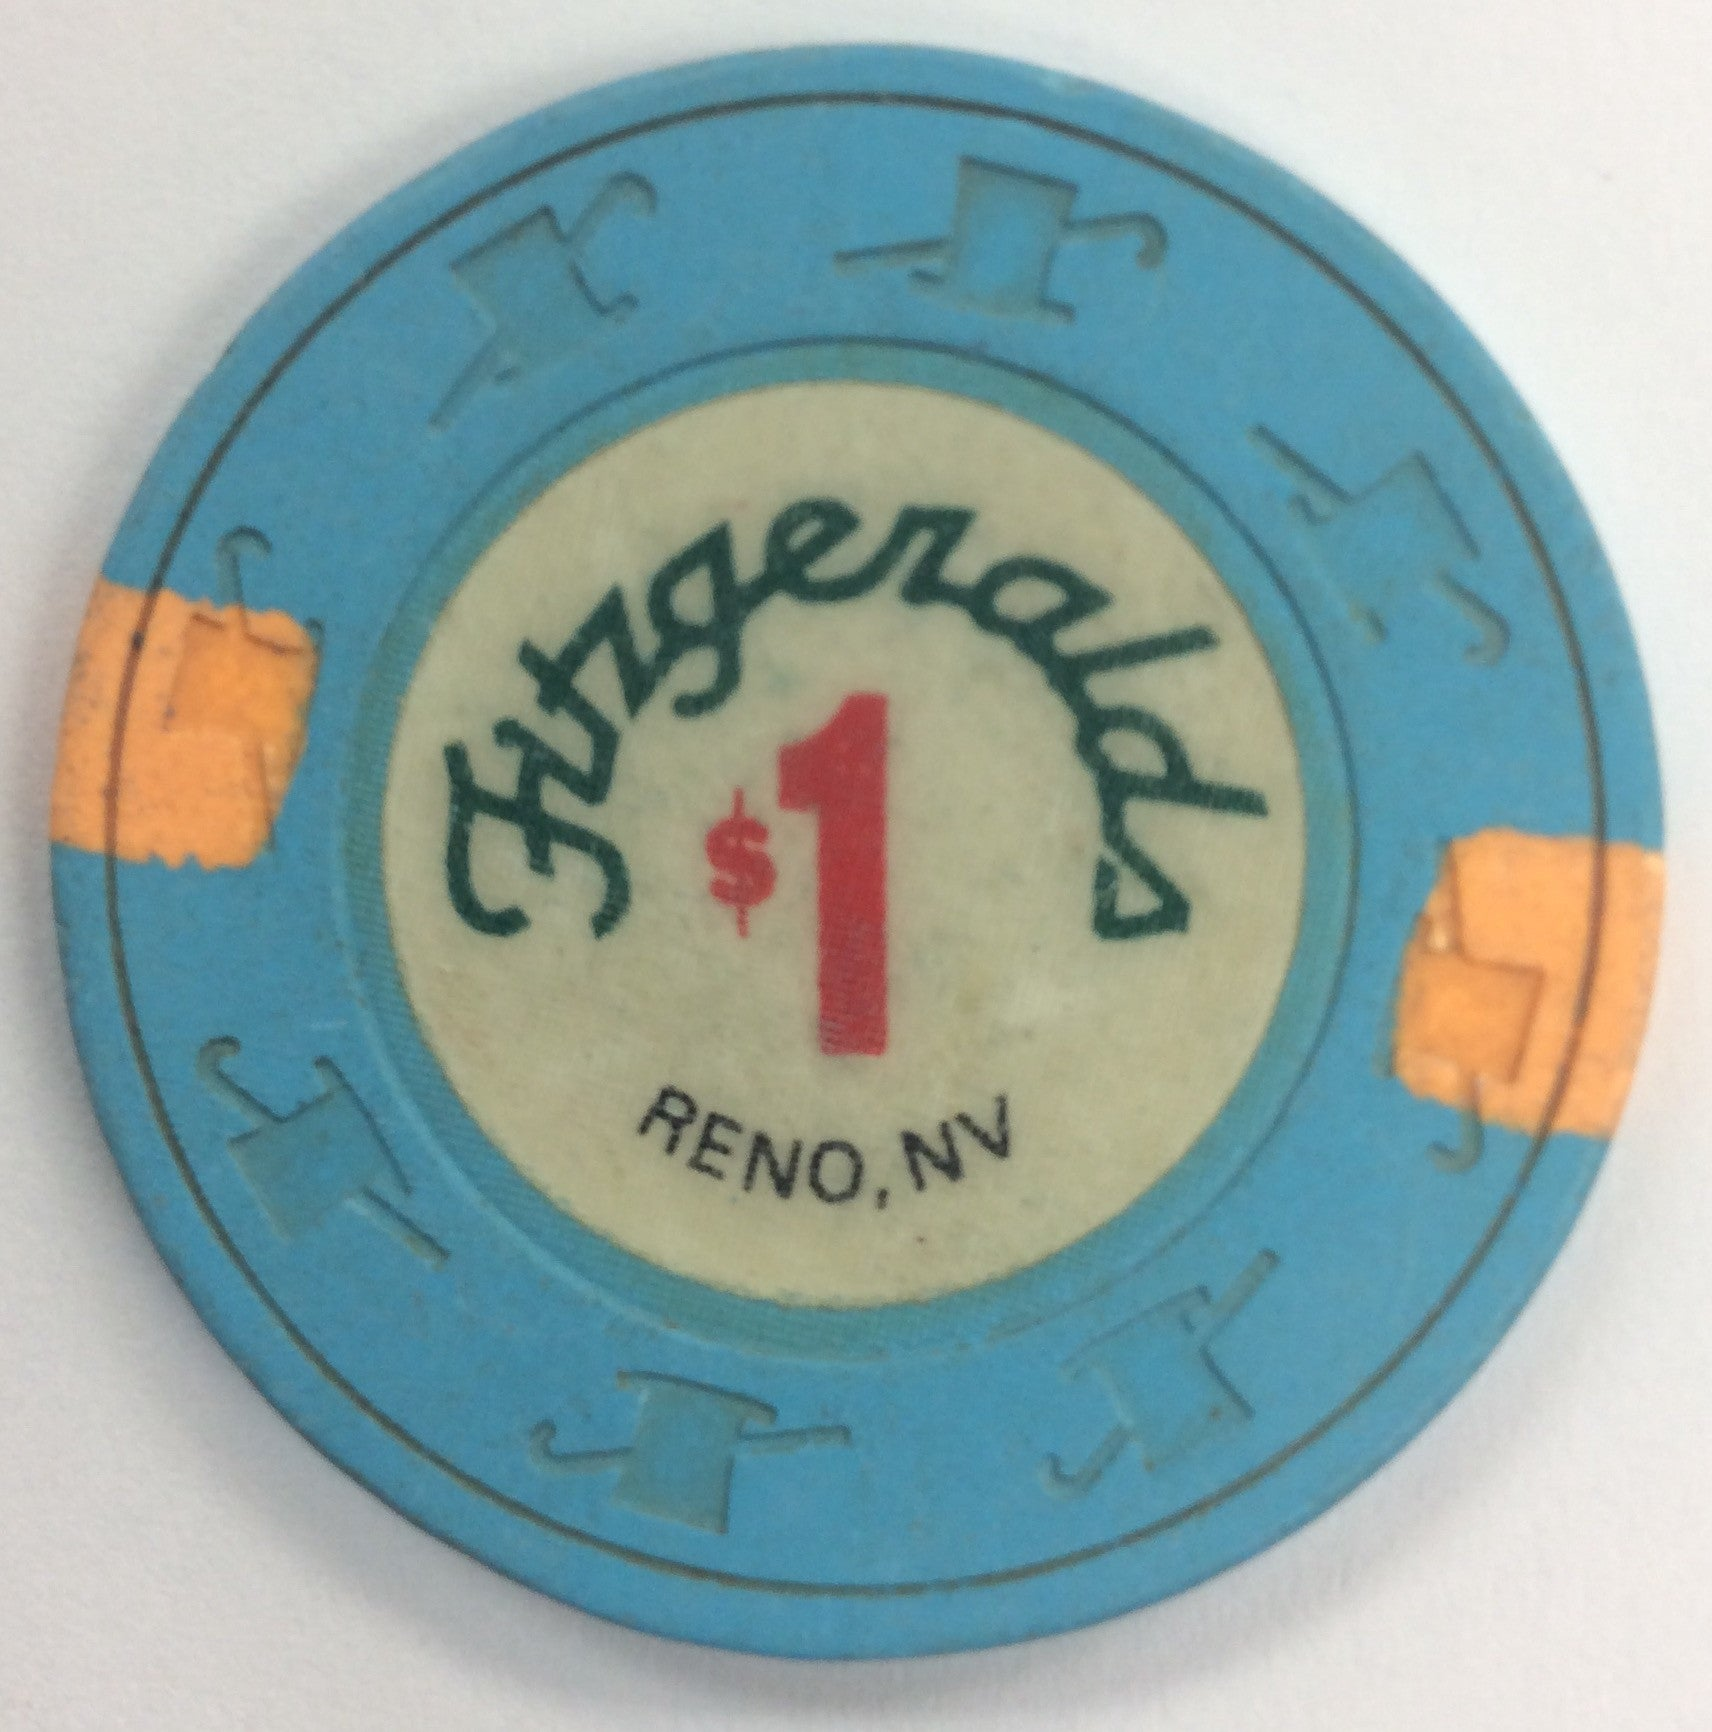 Fitzgeralds Reno $1 Casino Chip 1990's Short Cane - Spinettis Gaming